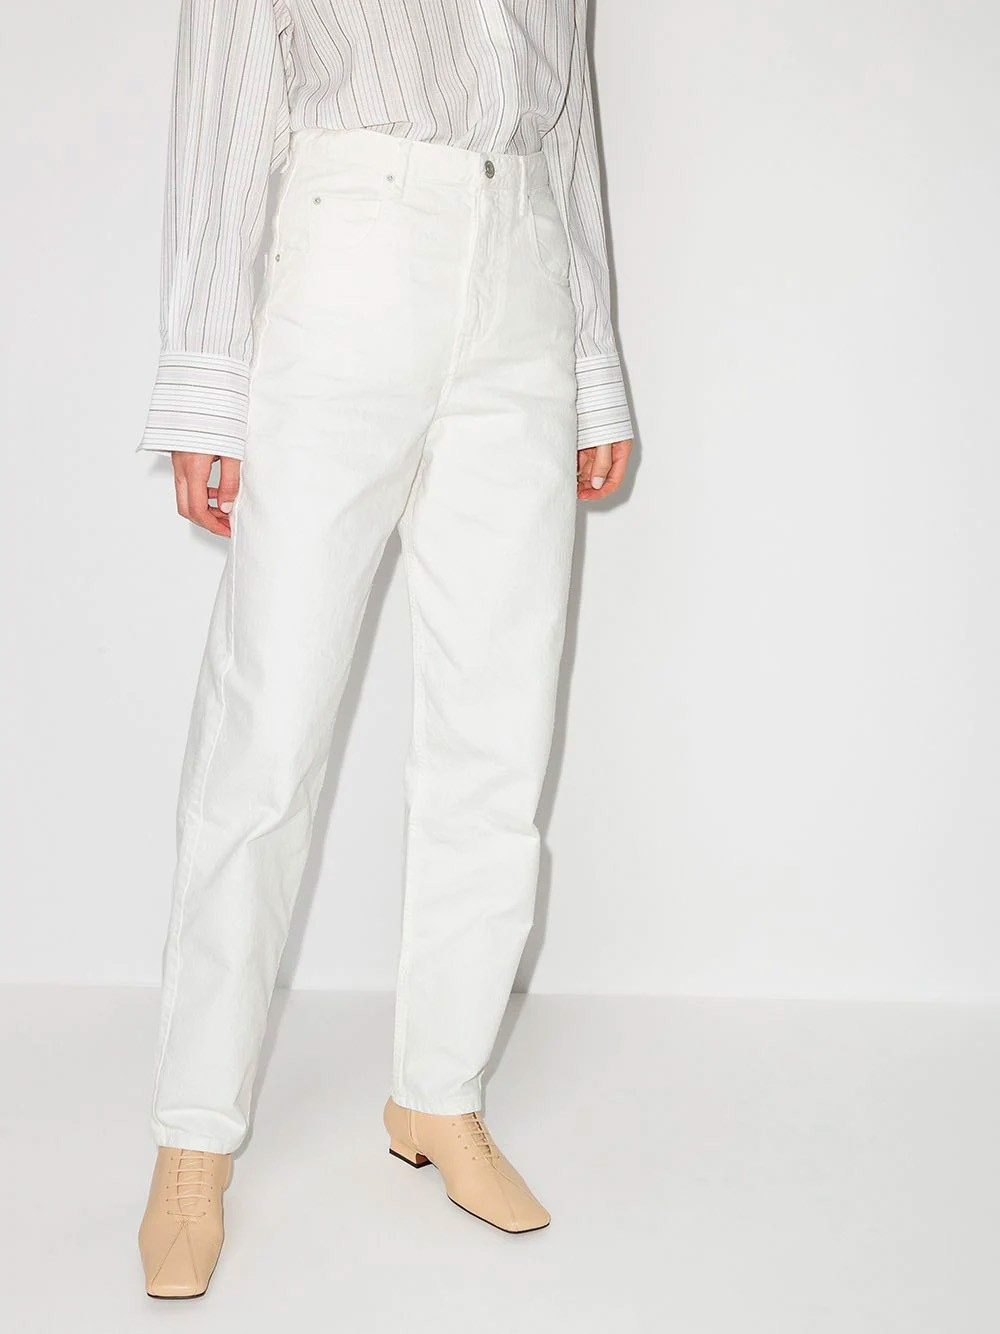 Isabel Marant Etoile Corfy Jeans mit hoher Taille